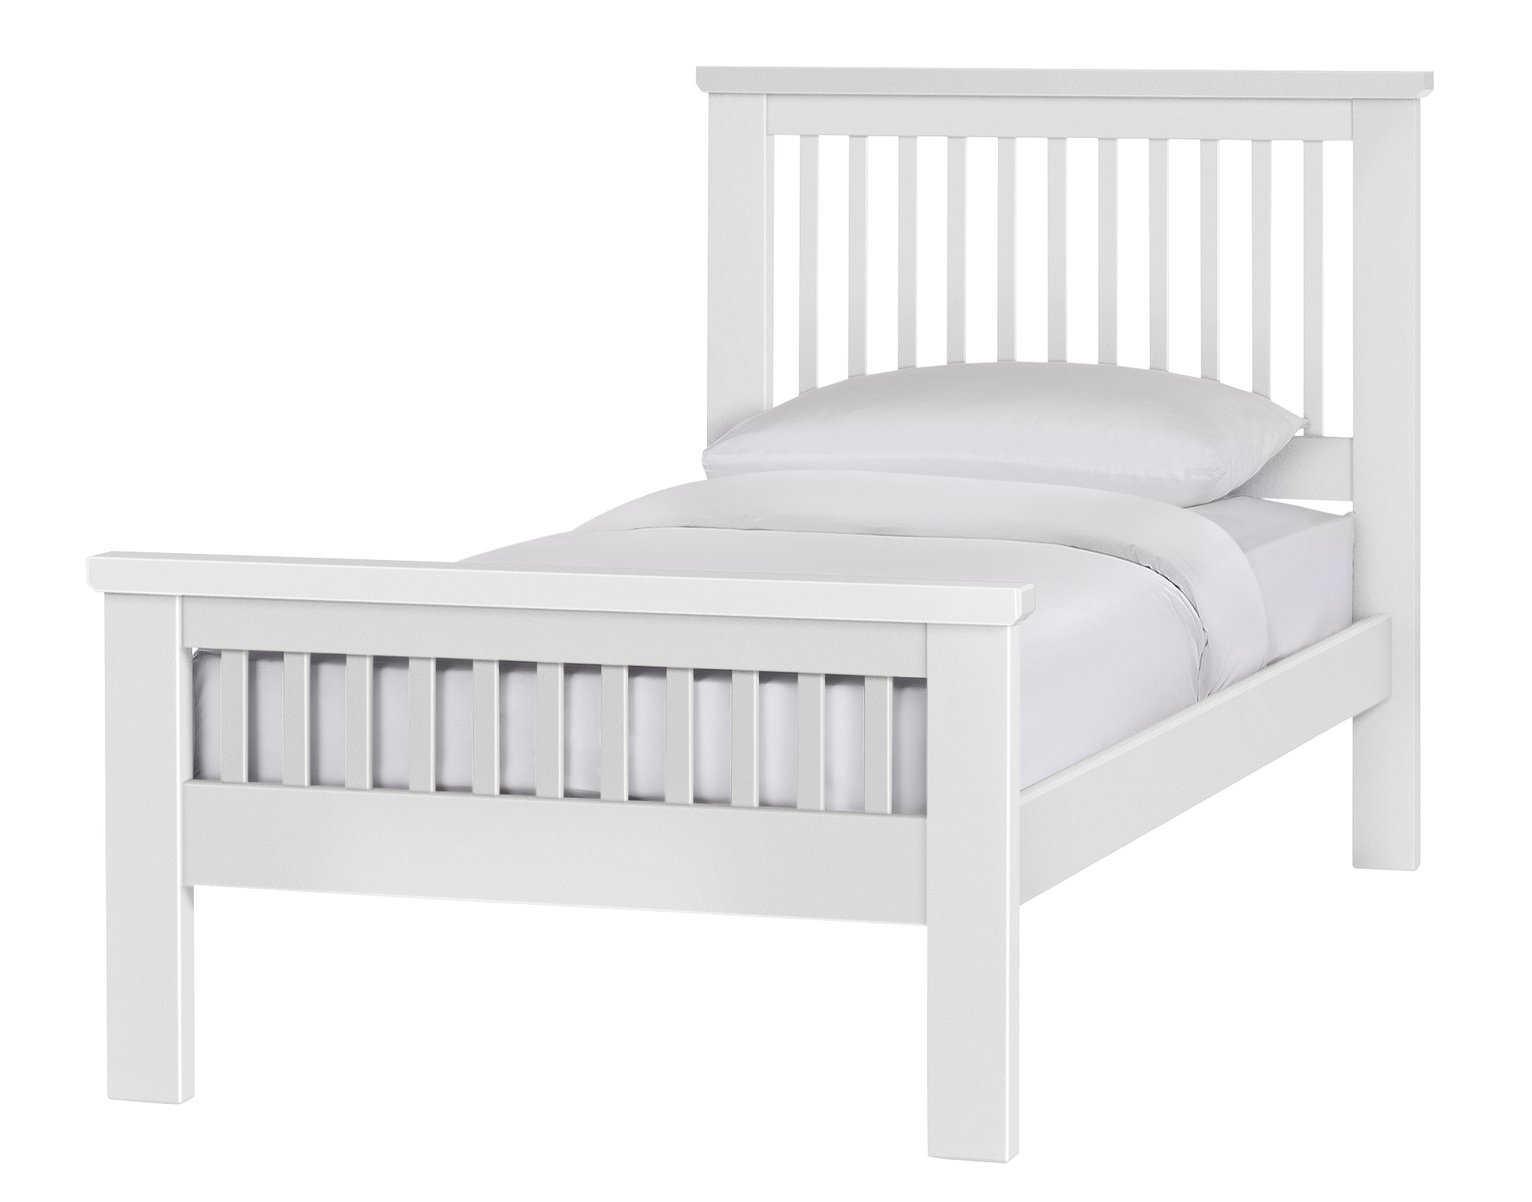 White Bed Frames buy collection aubrey single bed frame - white at argos.co.uk